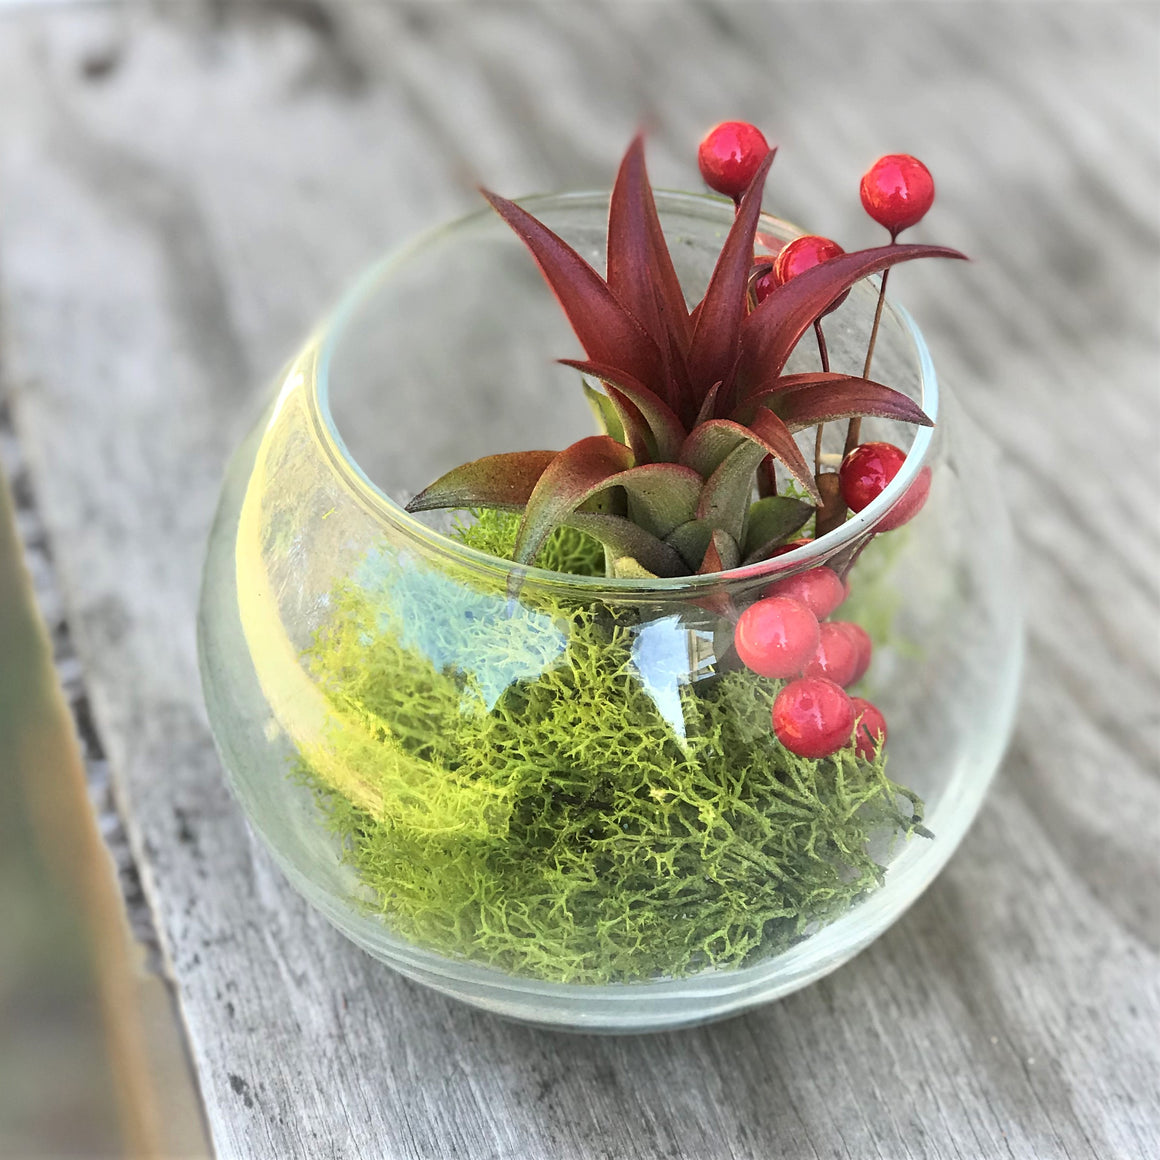 Wholesale - Festive Terrarium with Green Reindeer Moss, Berry Sprig, & Red Abdita Air Plant